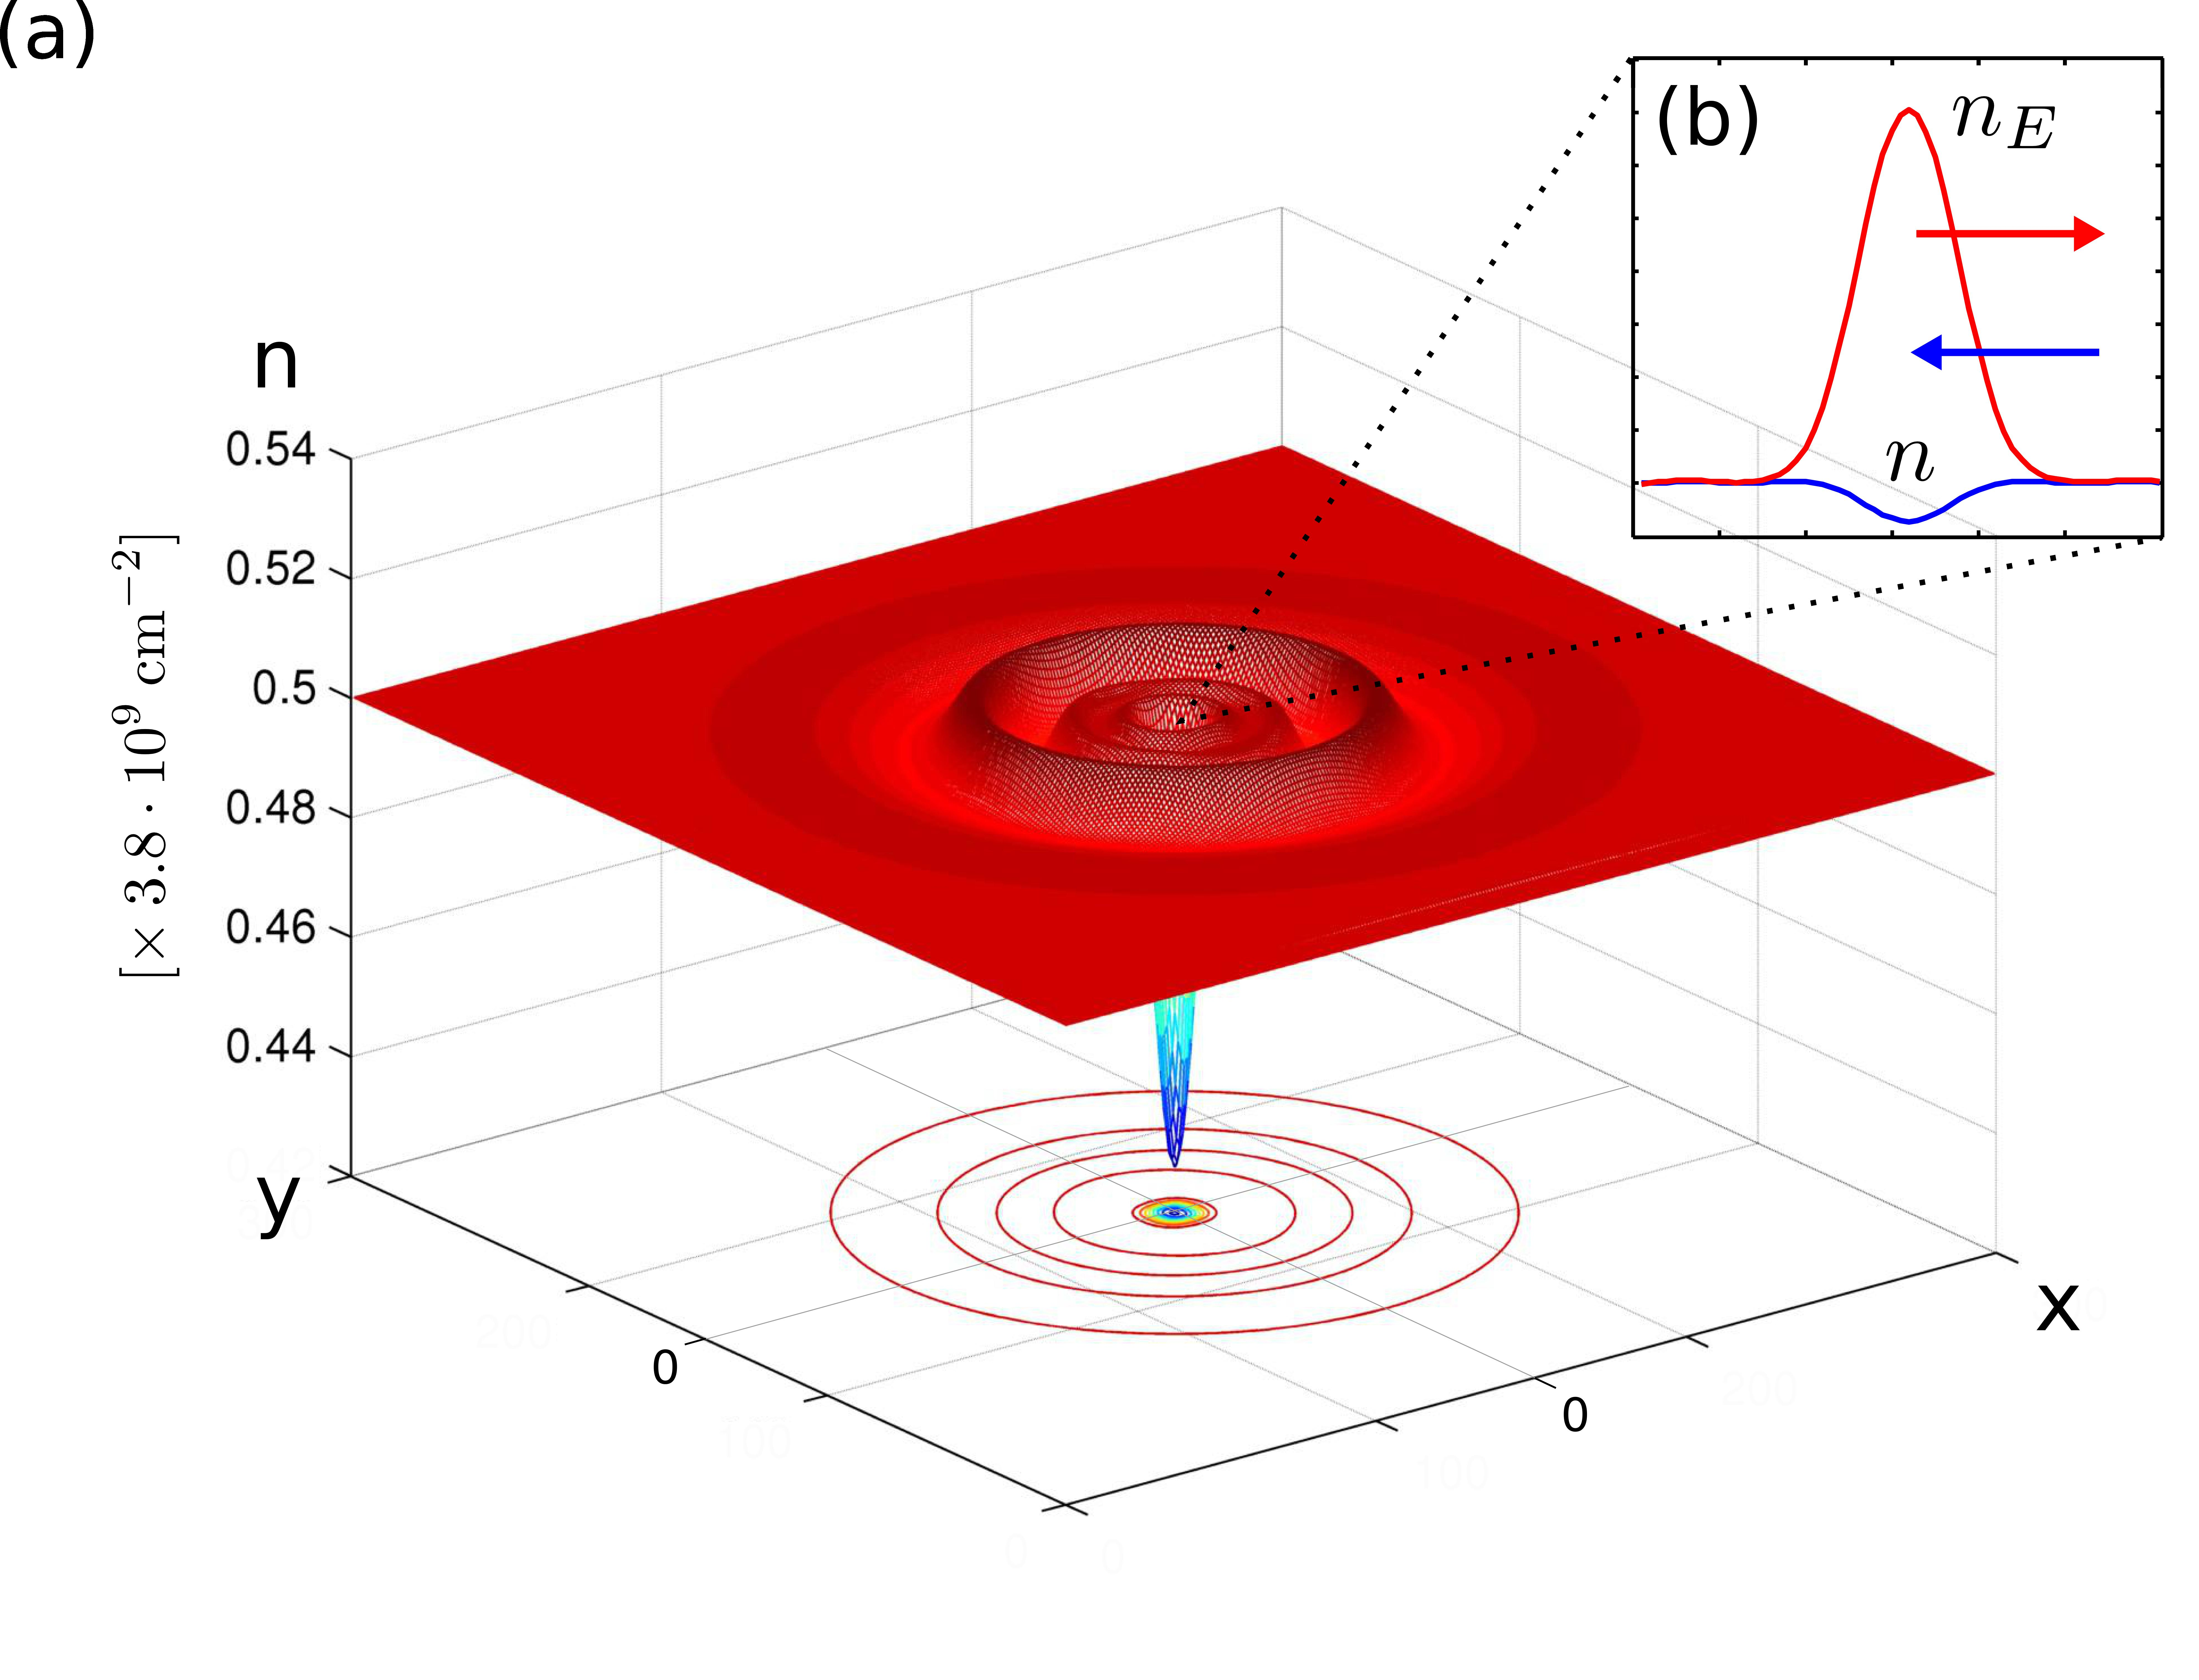 Hot spot in graphene. Inset: the soliton-like composite object at the origin. The blue curve shows the dip in the charge density, while the red curve shows the excess energy density. The red arrow indicates the pressure force compensated by the self-consistent electric field (shown by the blue arrow). Adapted from Ref